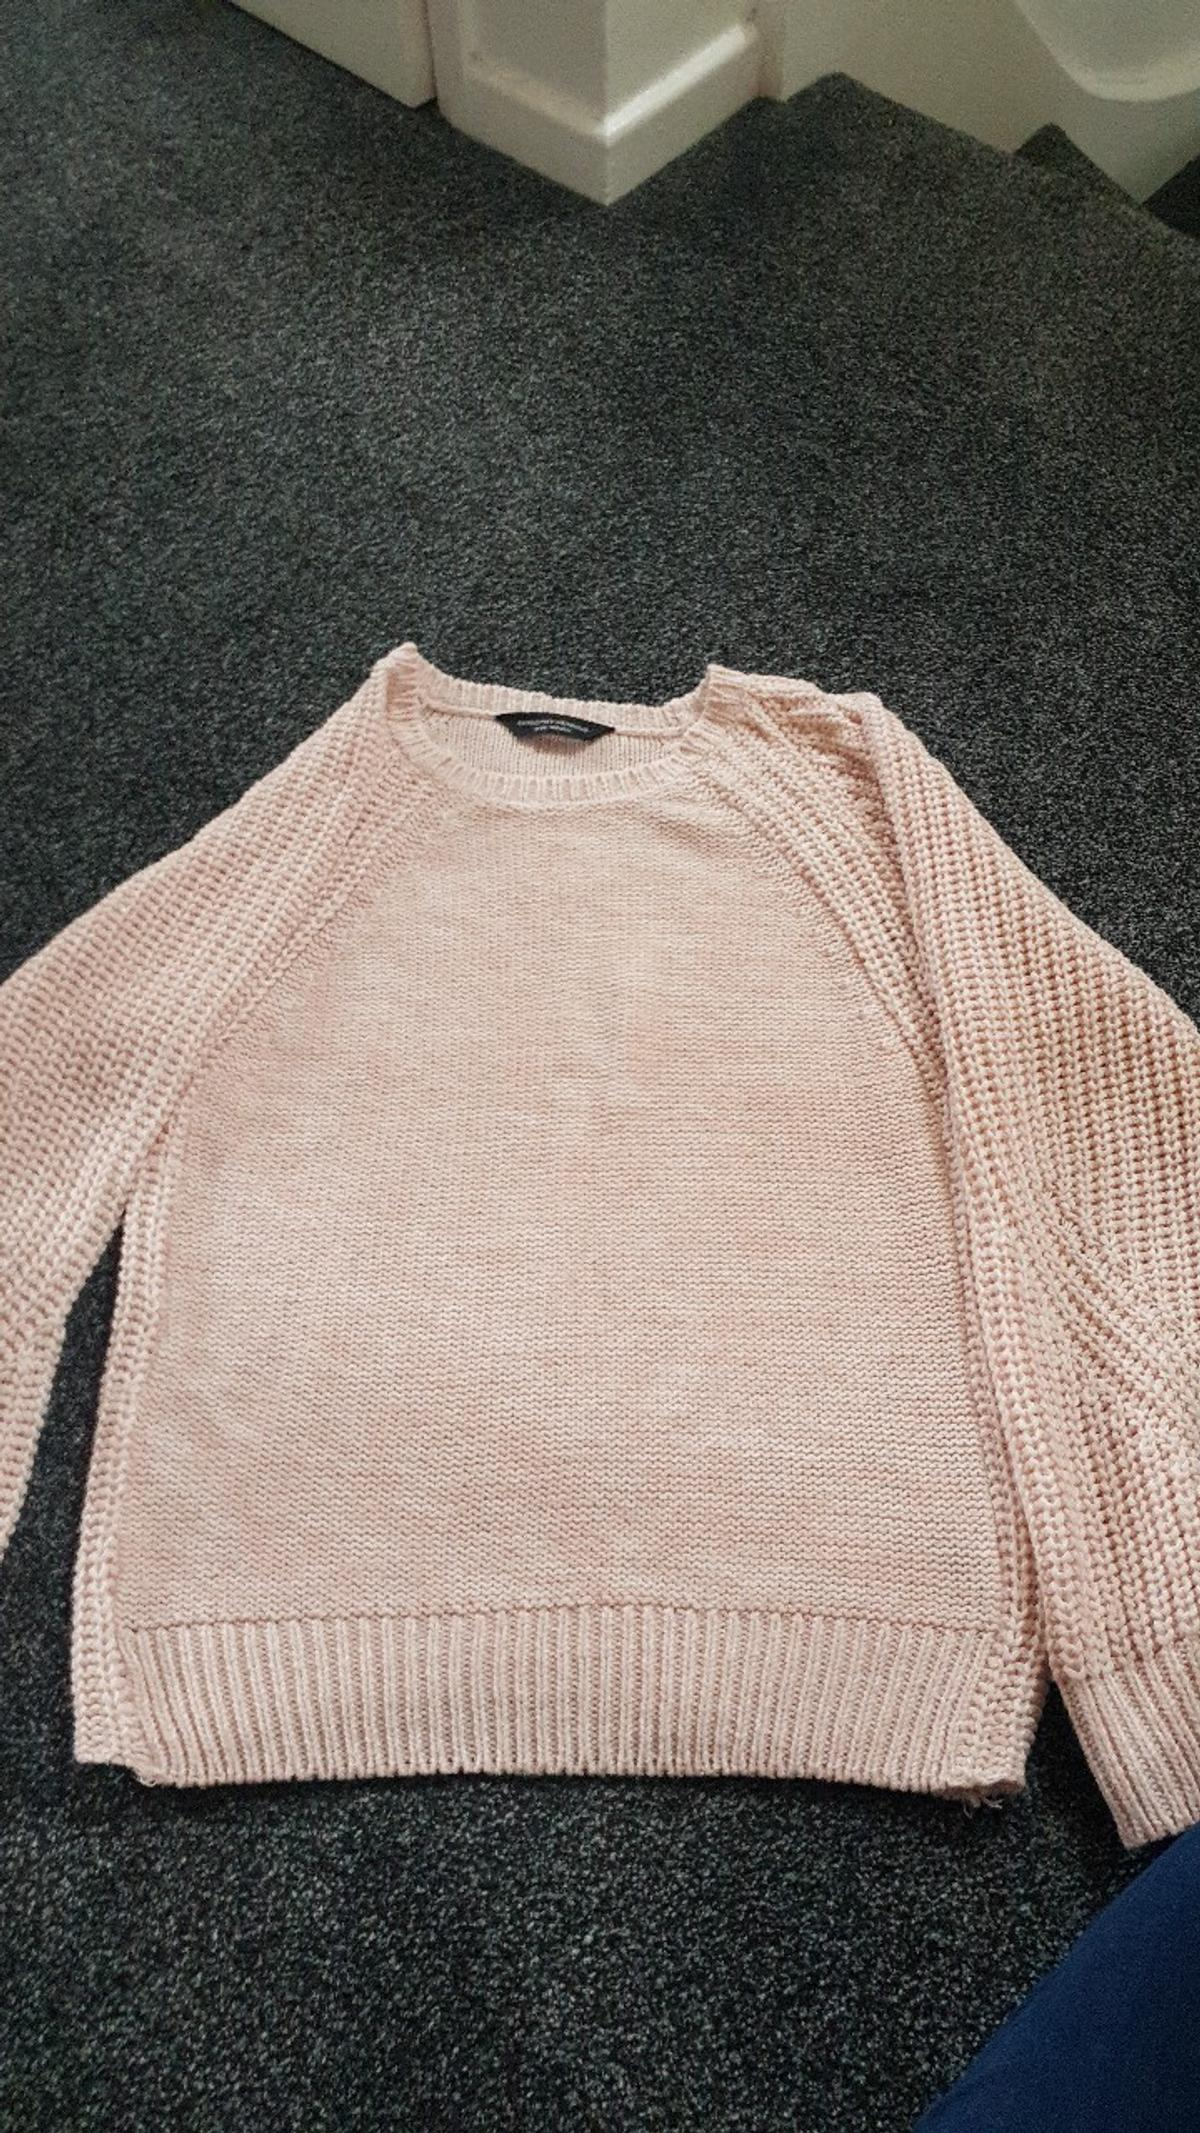 size 10 pink jumper from a pet free and smoke free home. washed and ironed